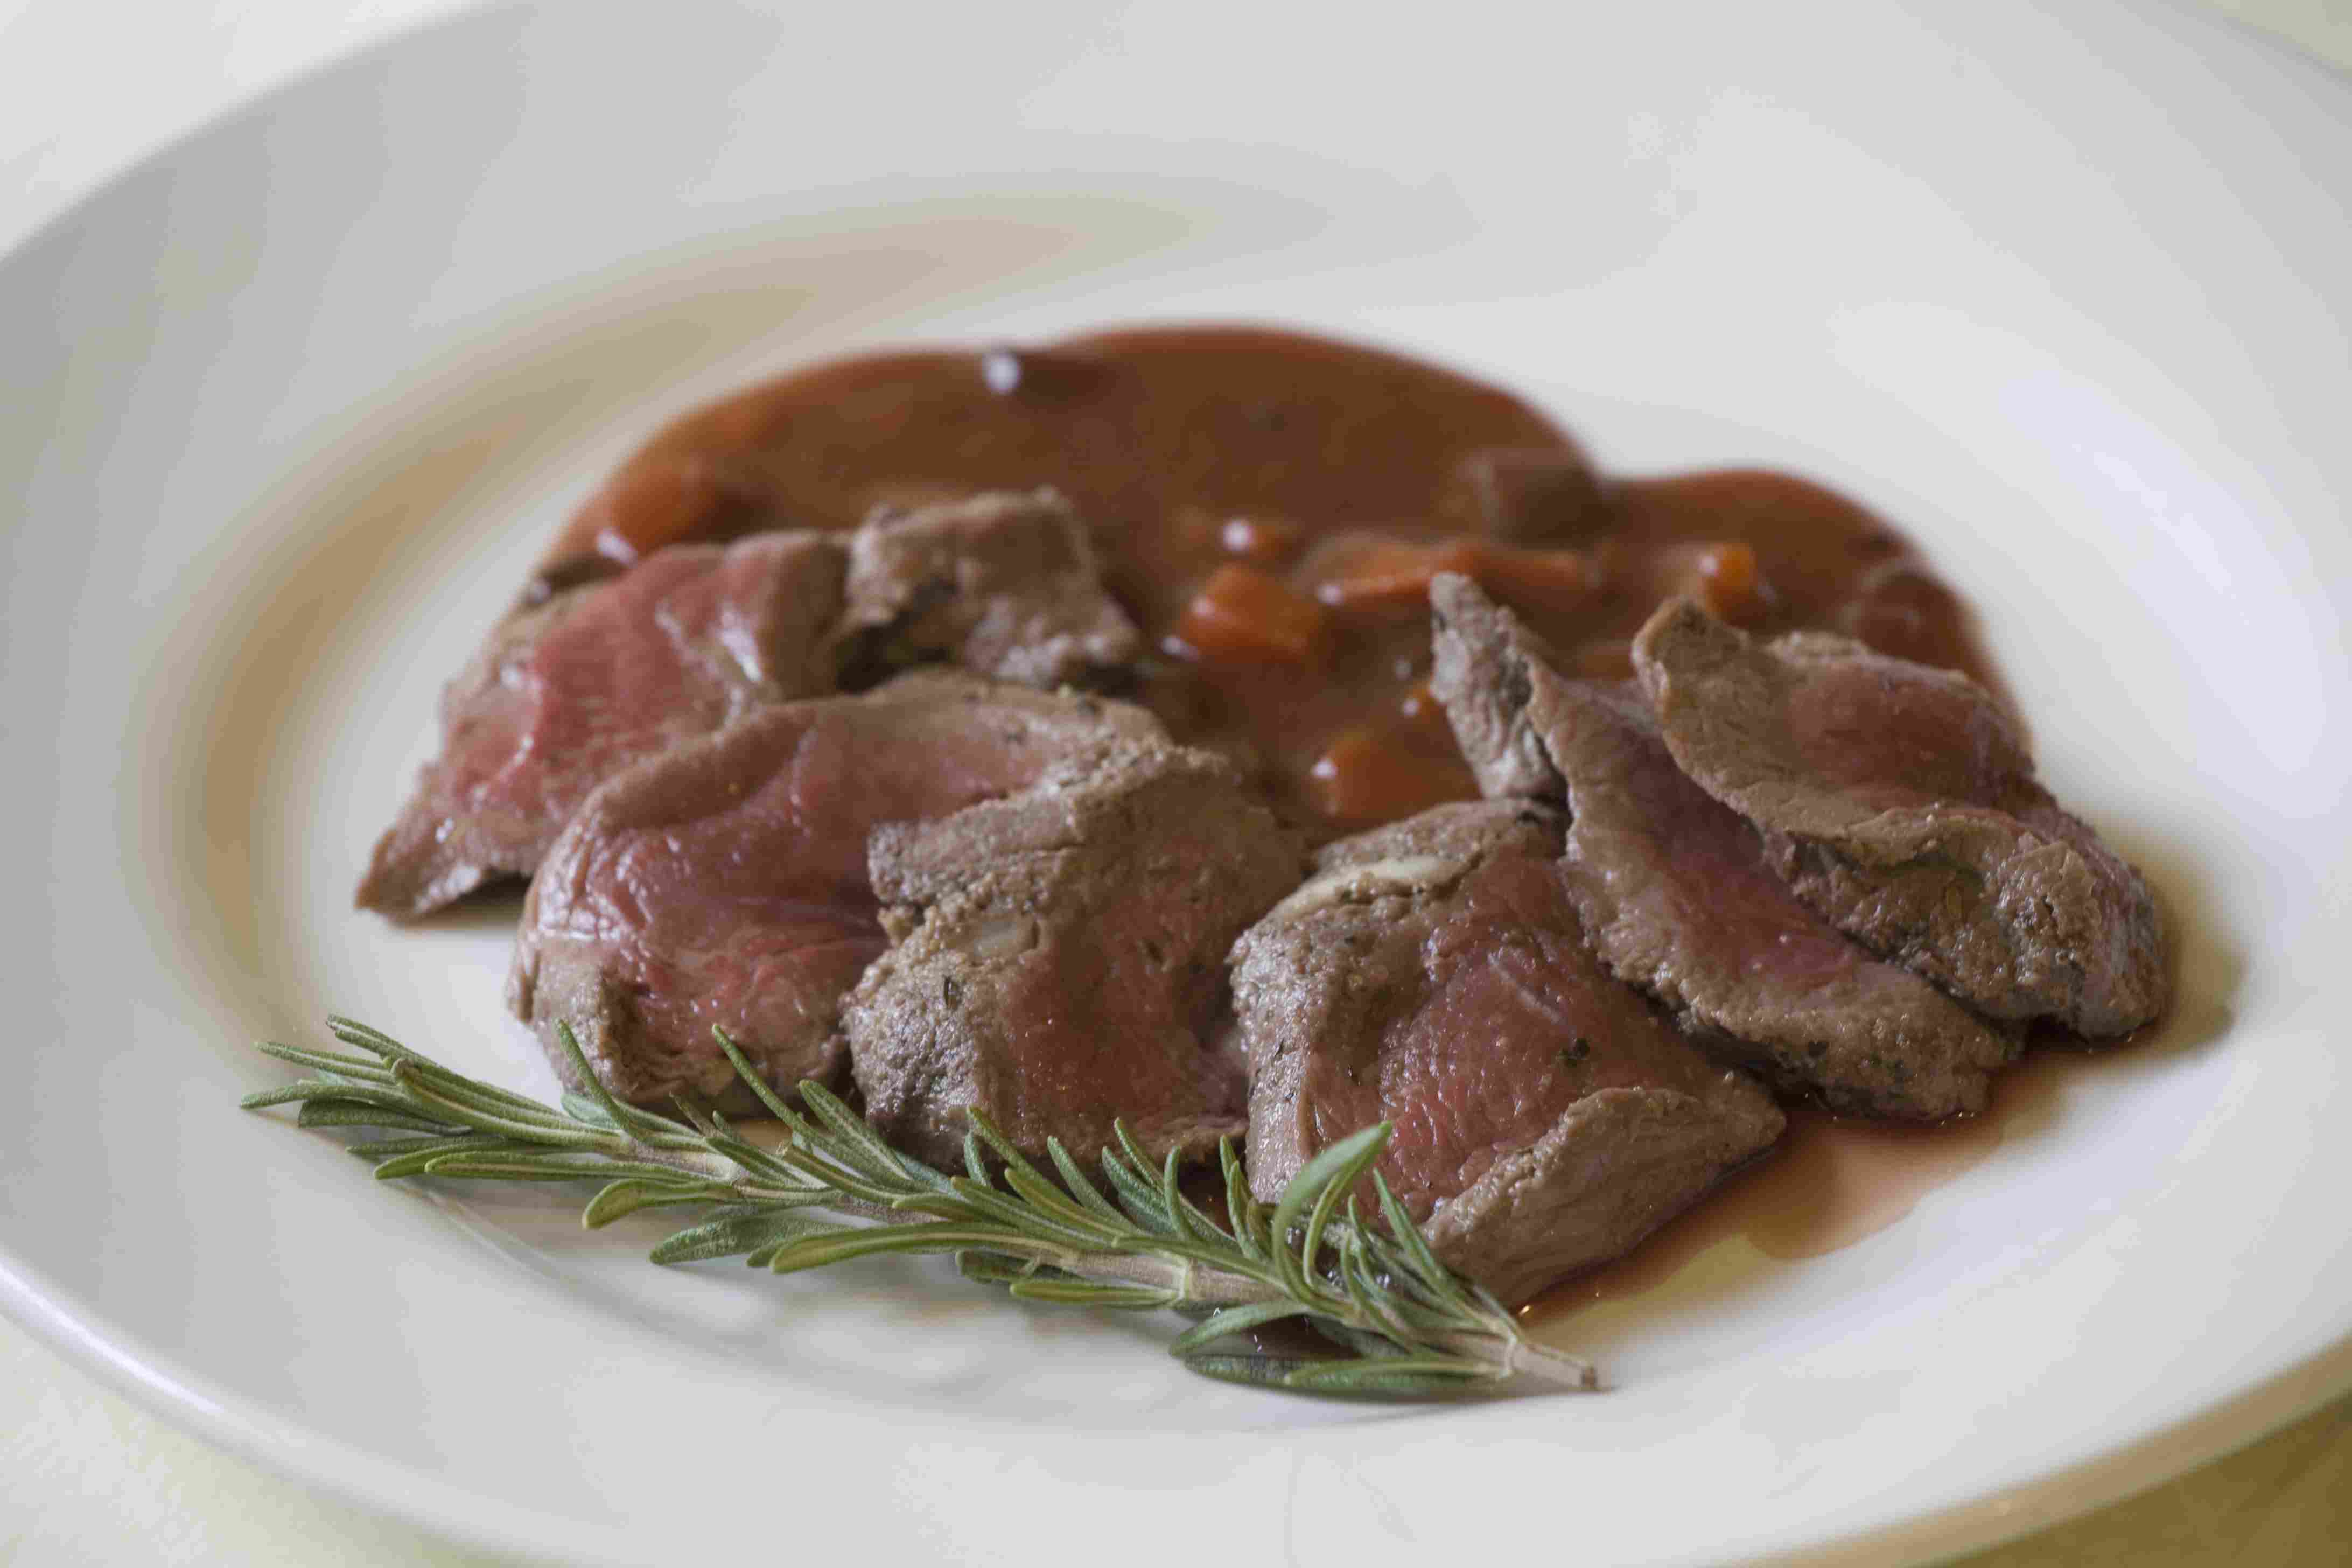 Venison with a spring of rosemary